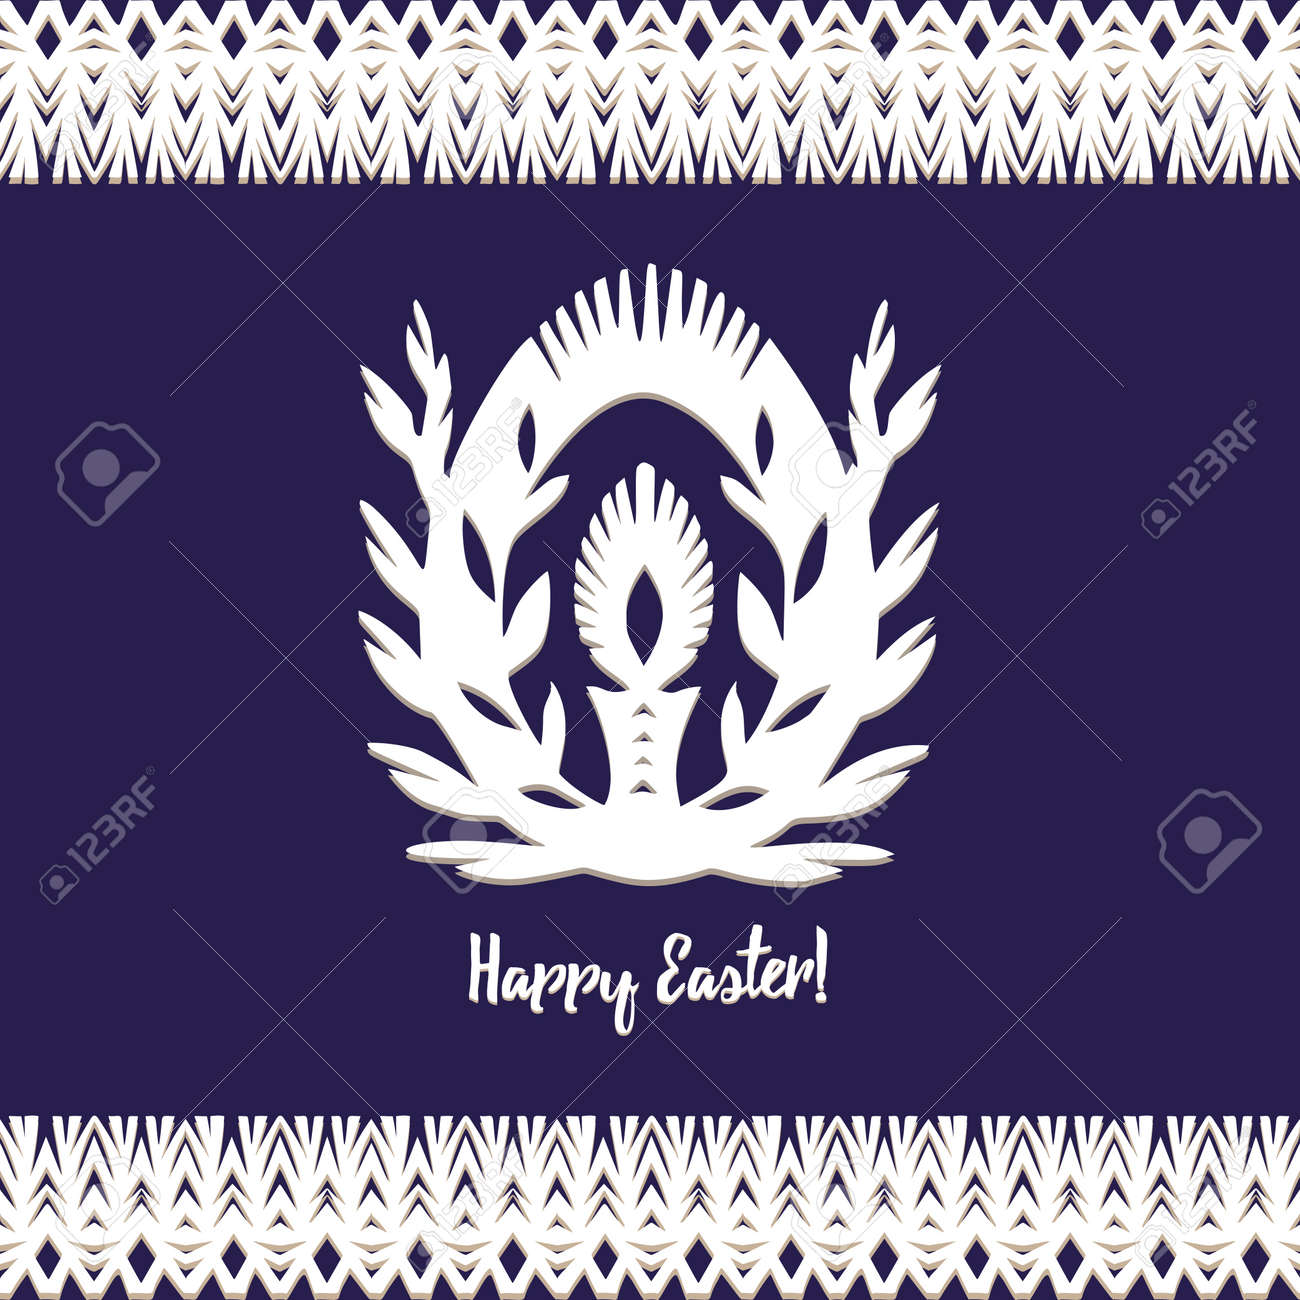 Egg whith candle Paper cut festive symbols Holiday spring Easter signs in white colors isolated on blue background and lace frame. Traditional Belarusian, Polish paper clippings. Hand made. Vector - 164995940